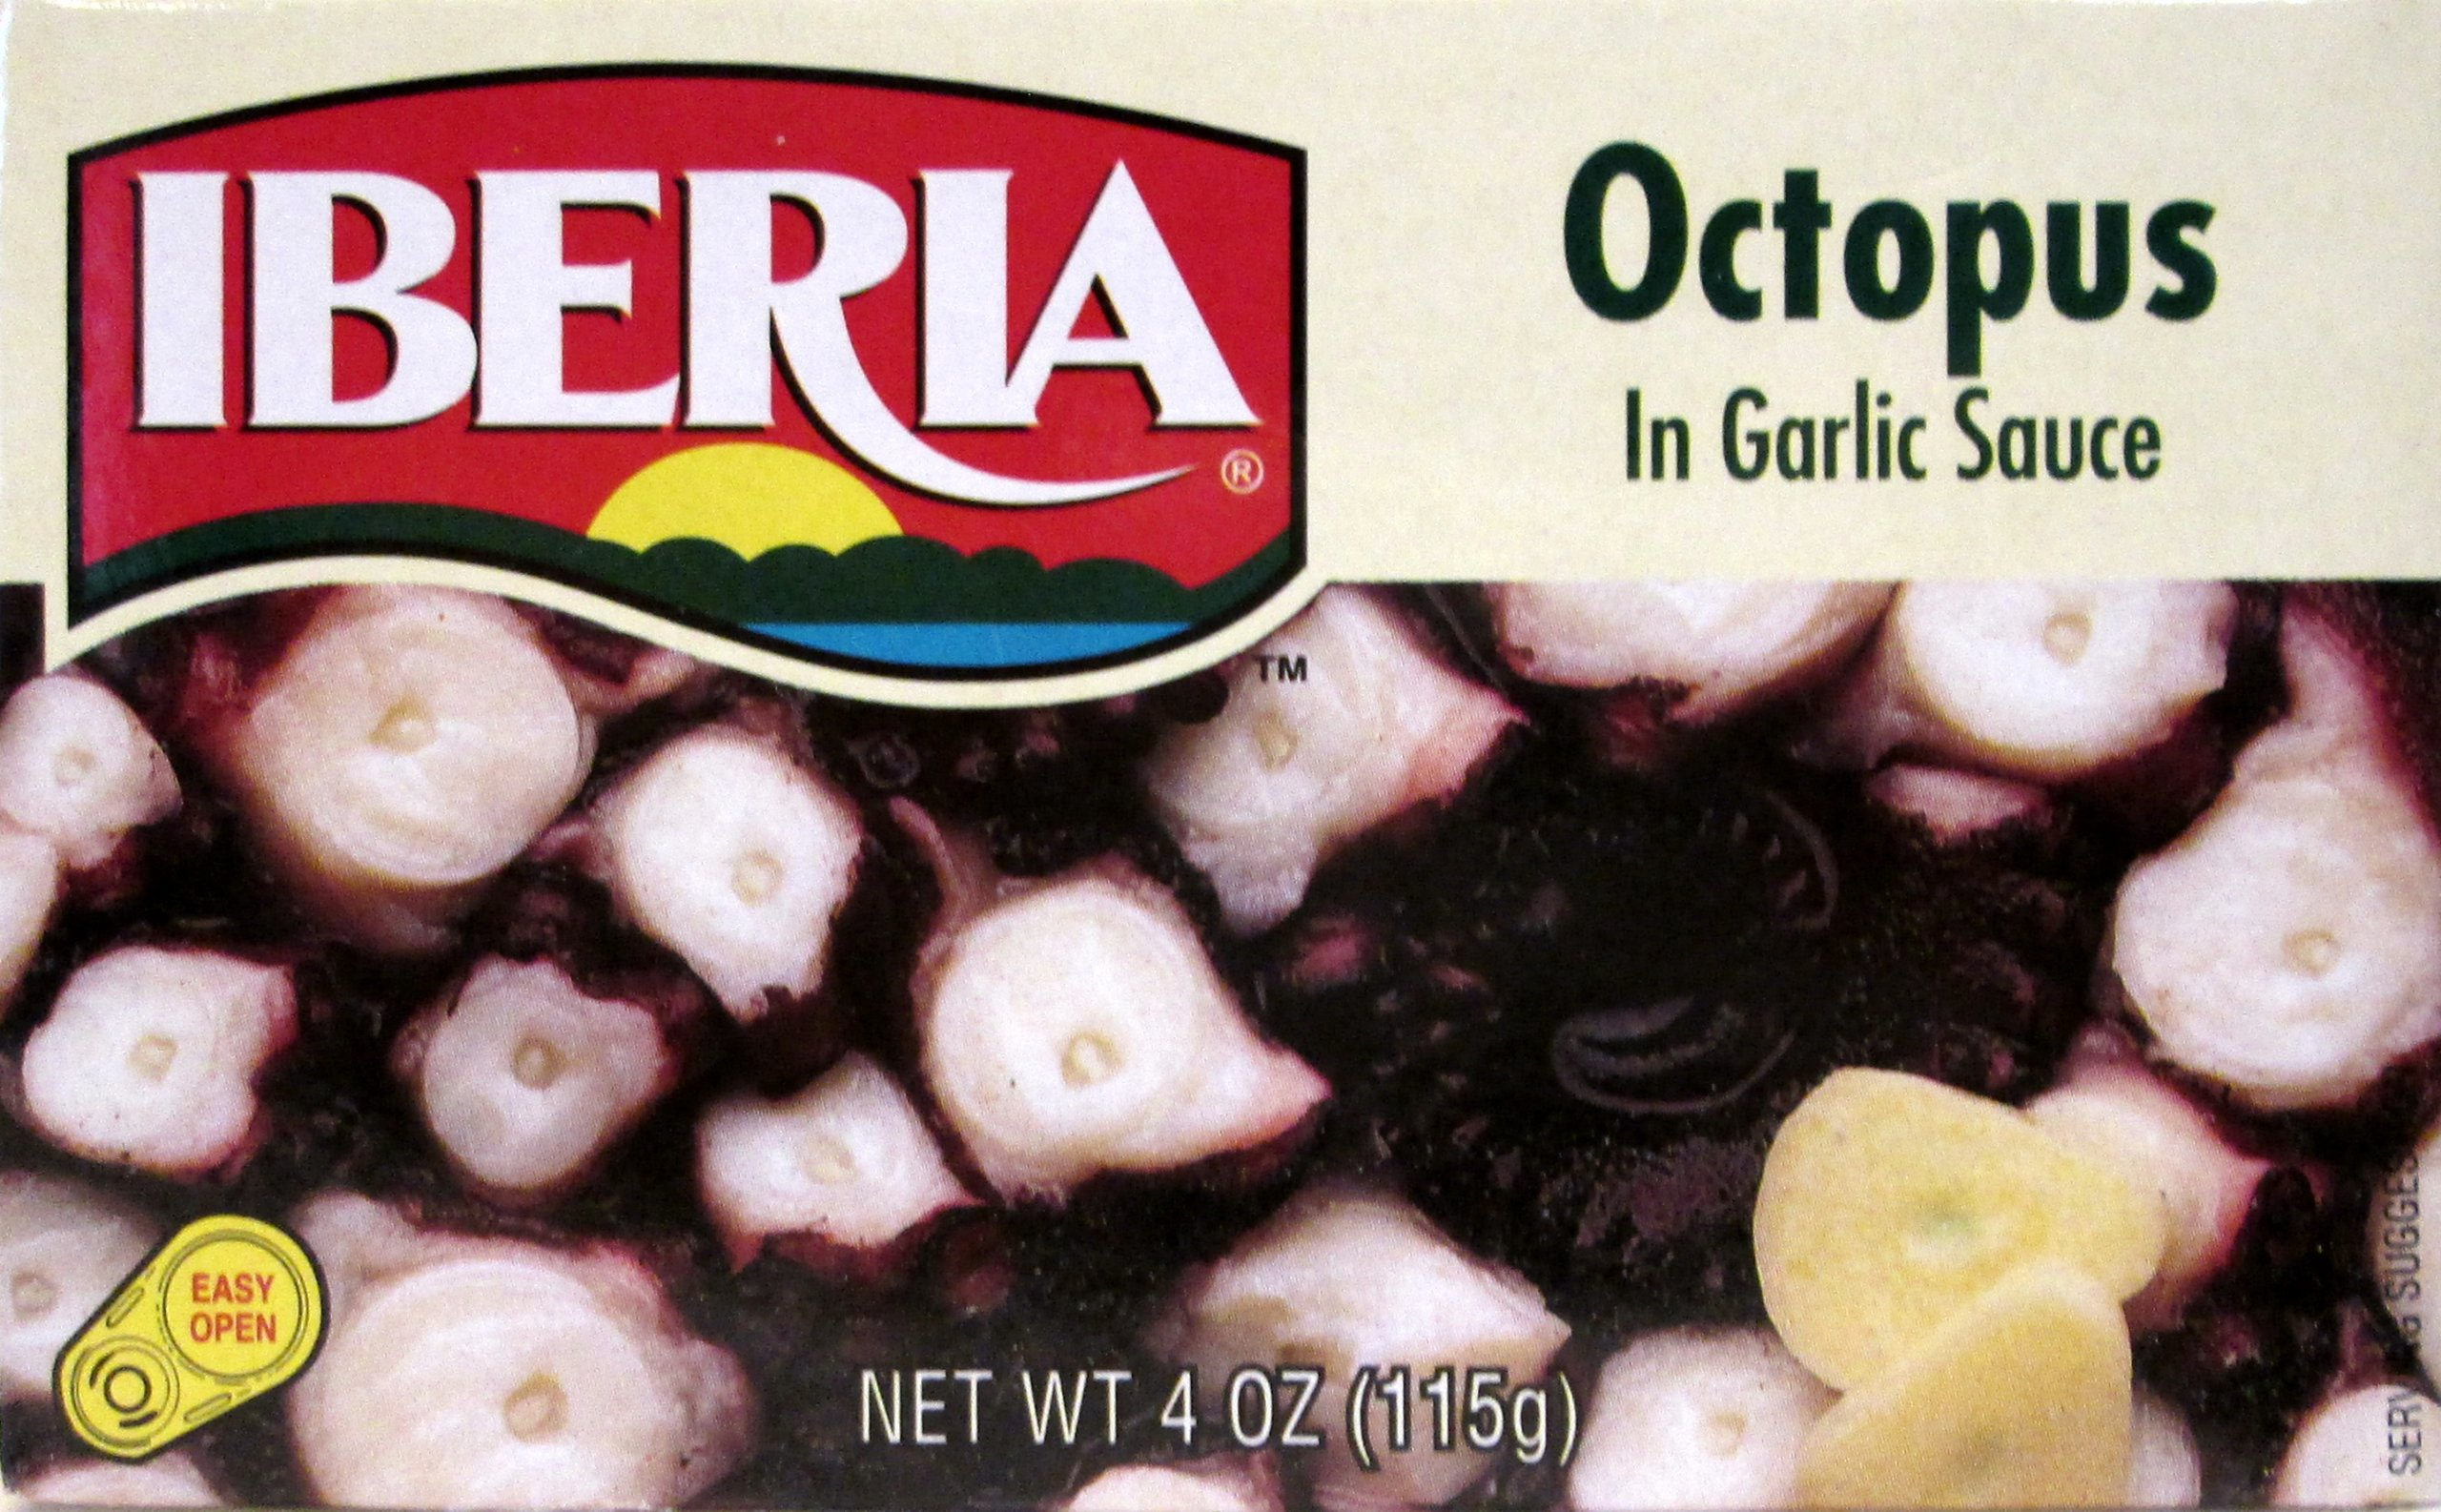 Iberia Octopus in Garlic Sauce (Pack of 3) 4 oz Cans